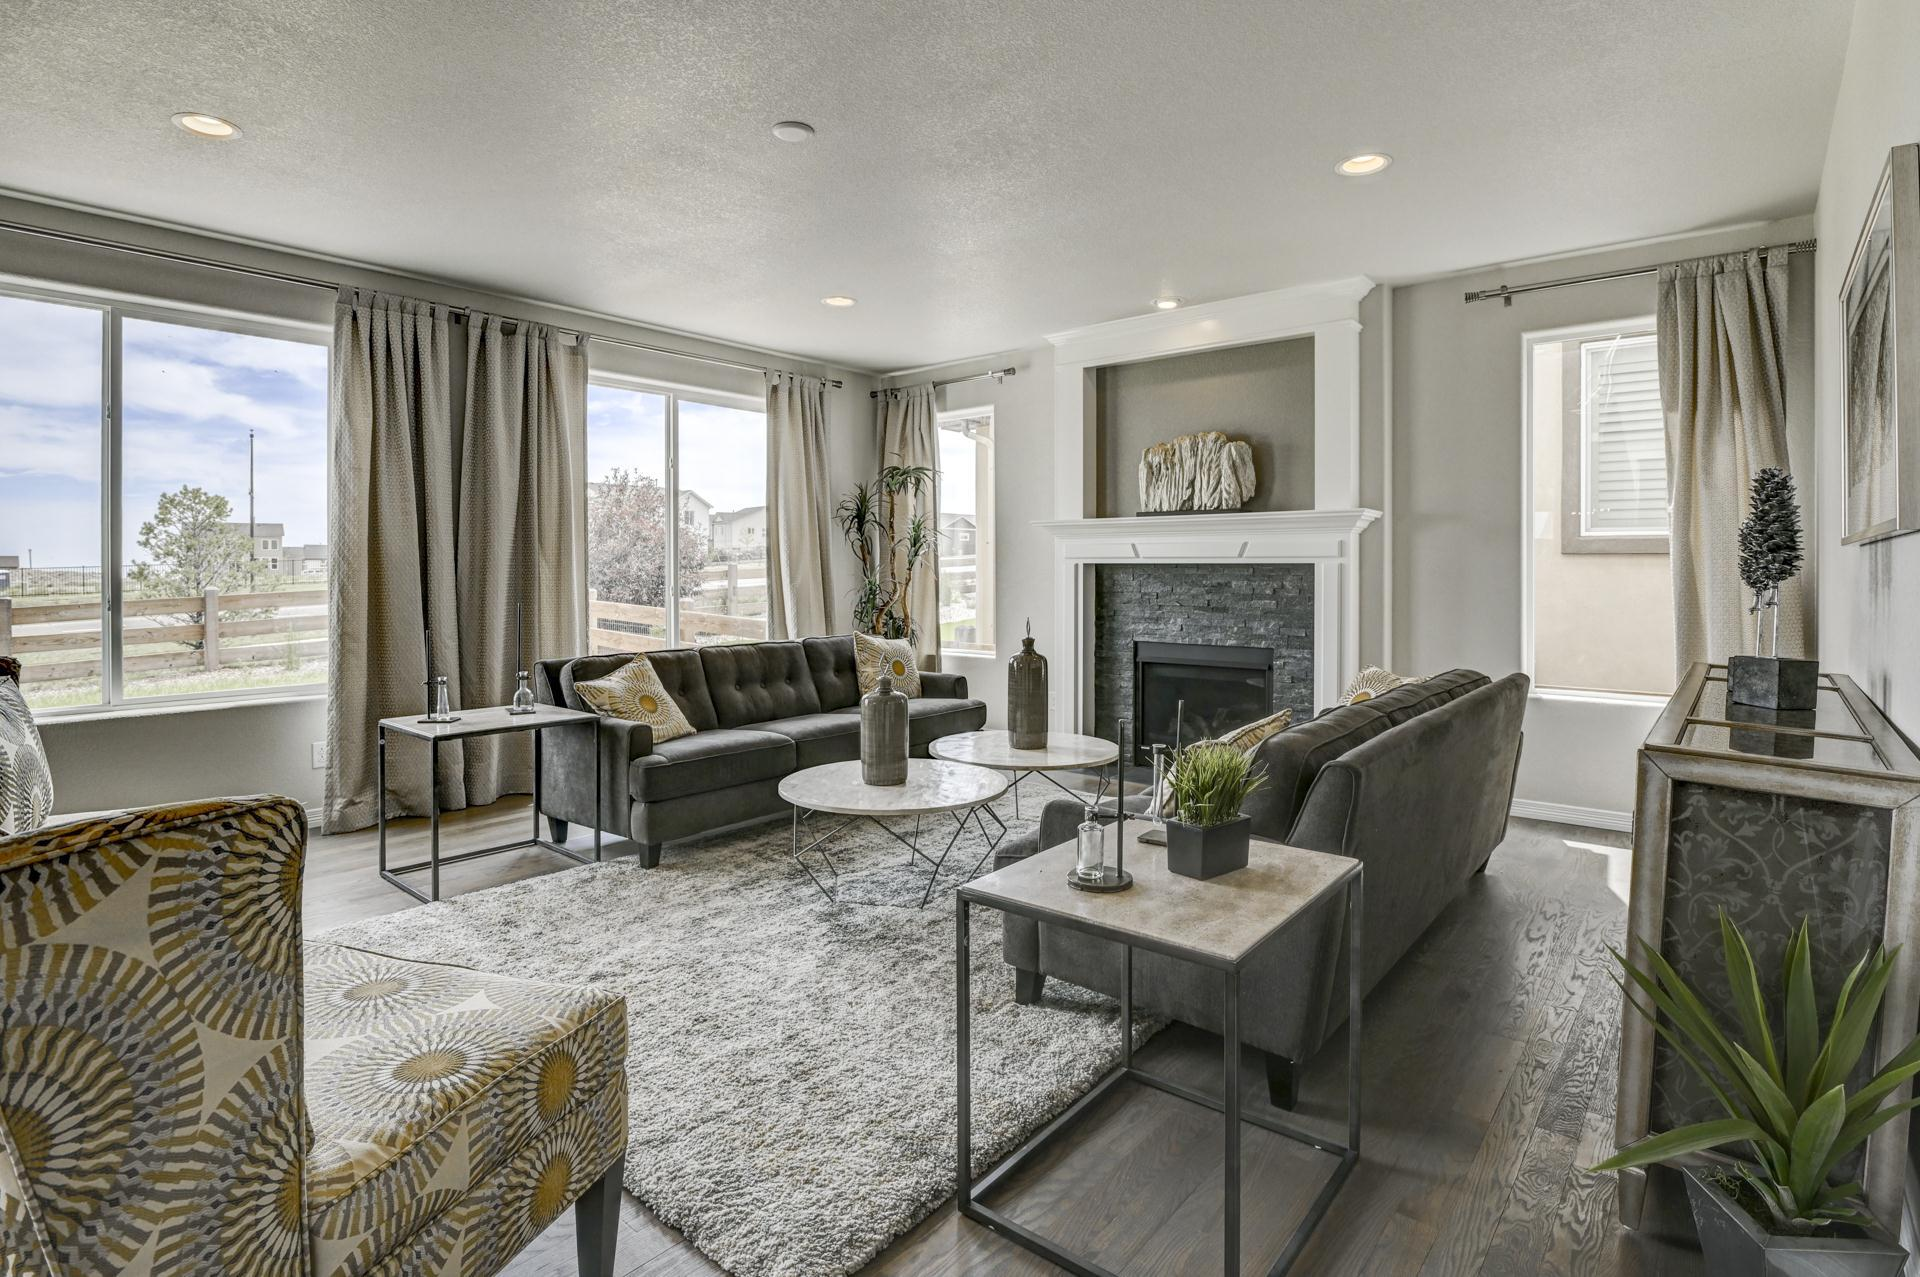 Living Area featured in the Sunlight Peak (Unfinished Basement) By Reunion Homes